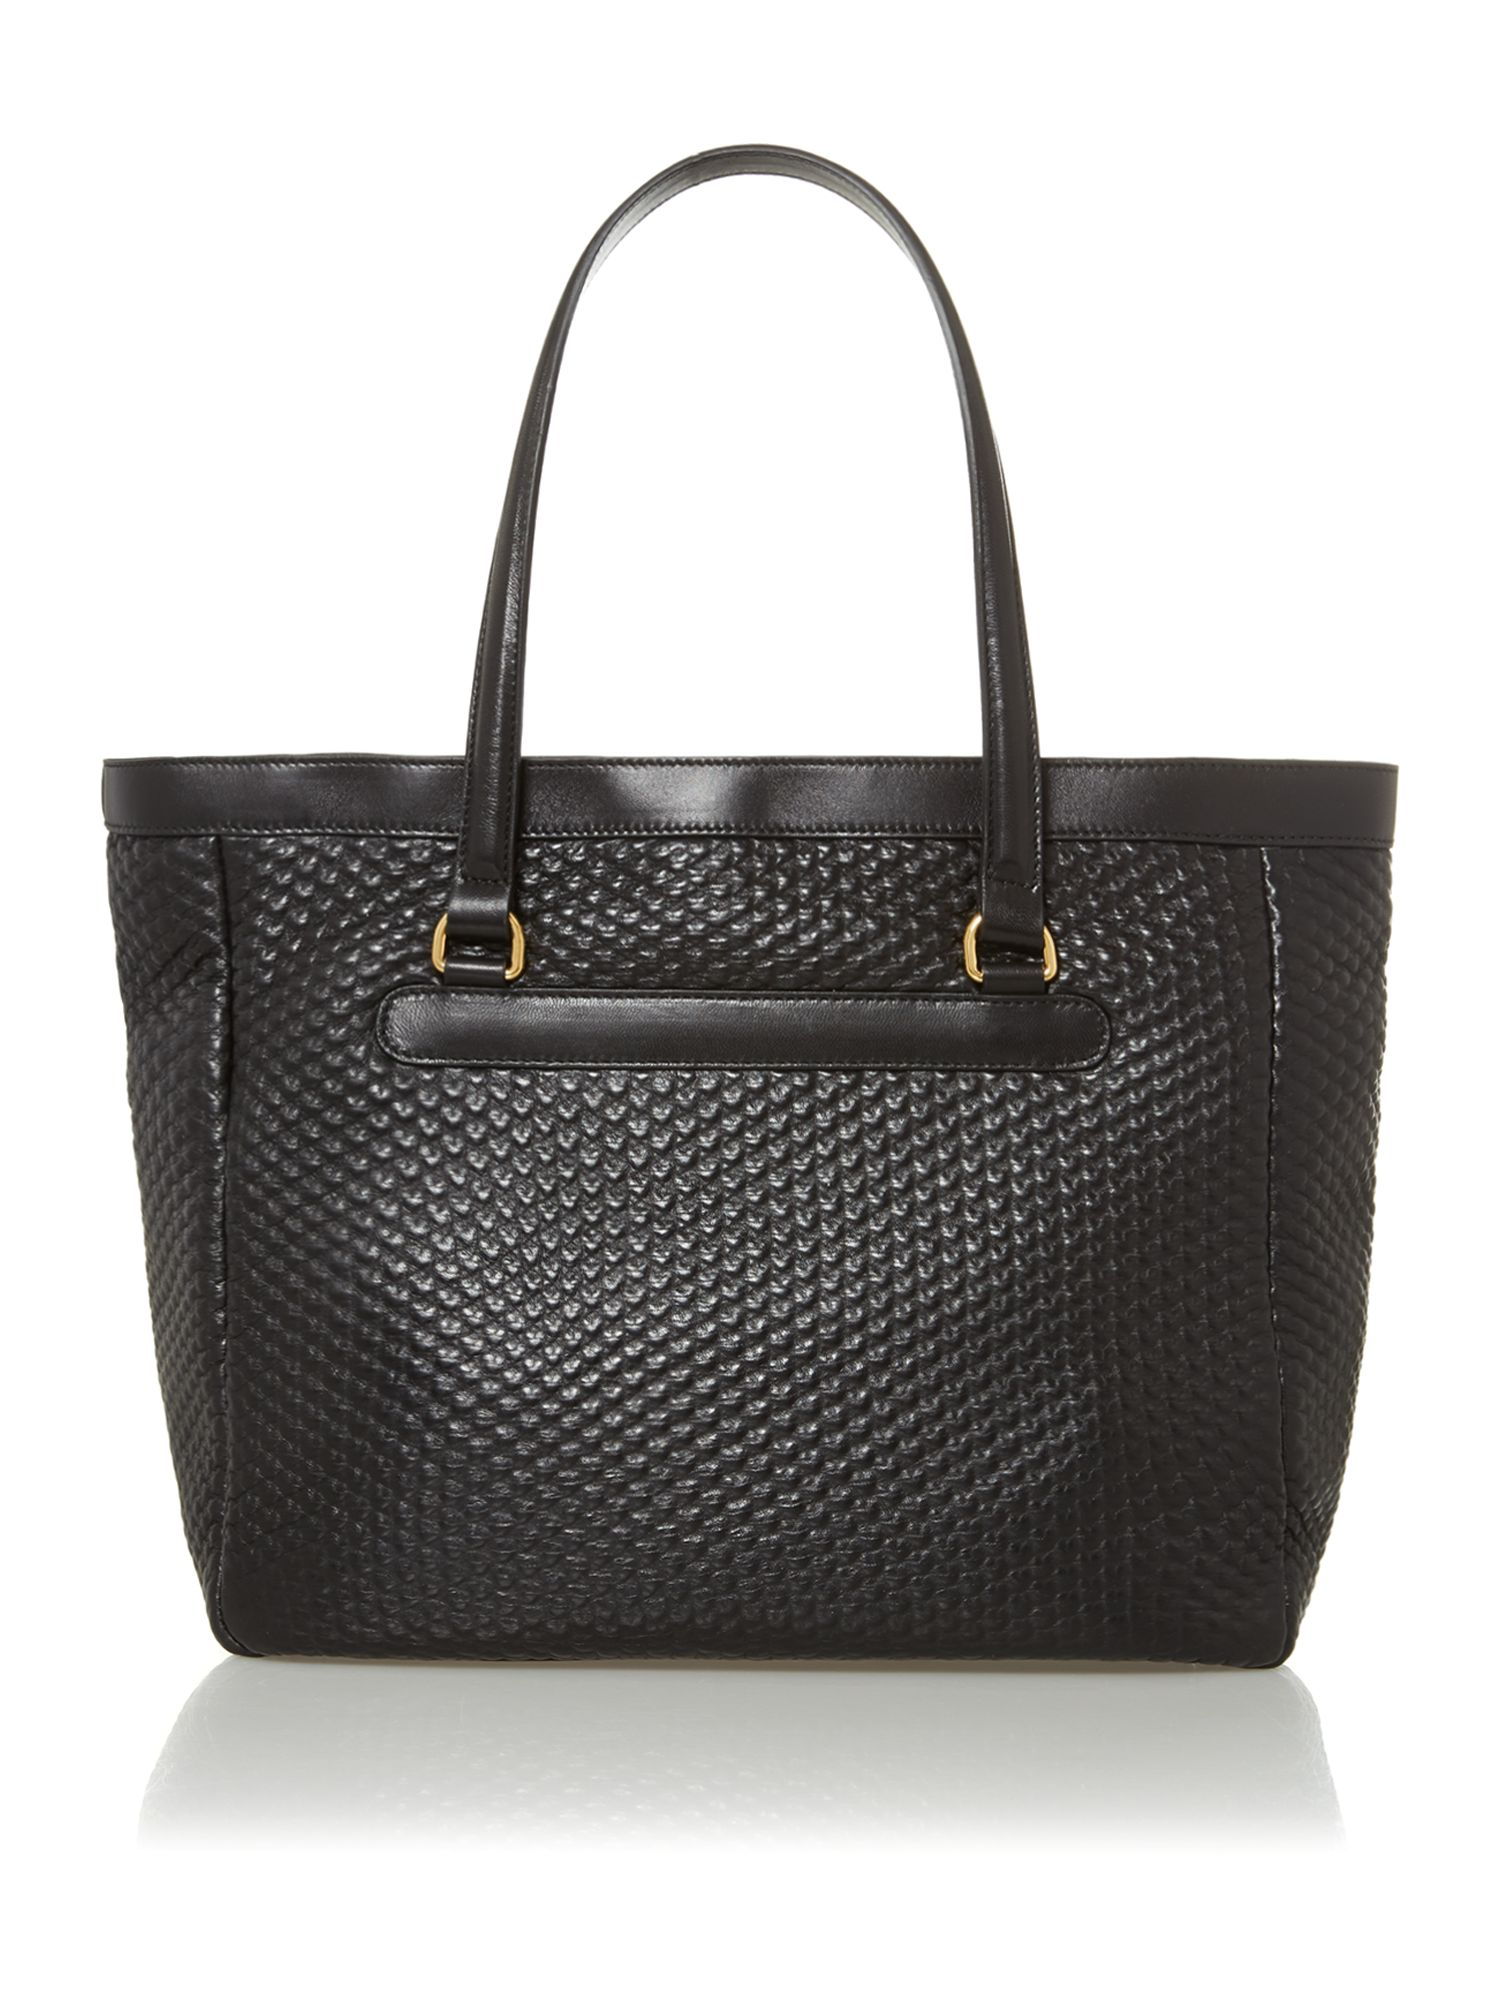 Dita black tote bag